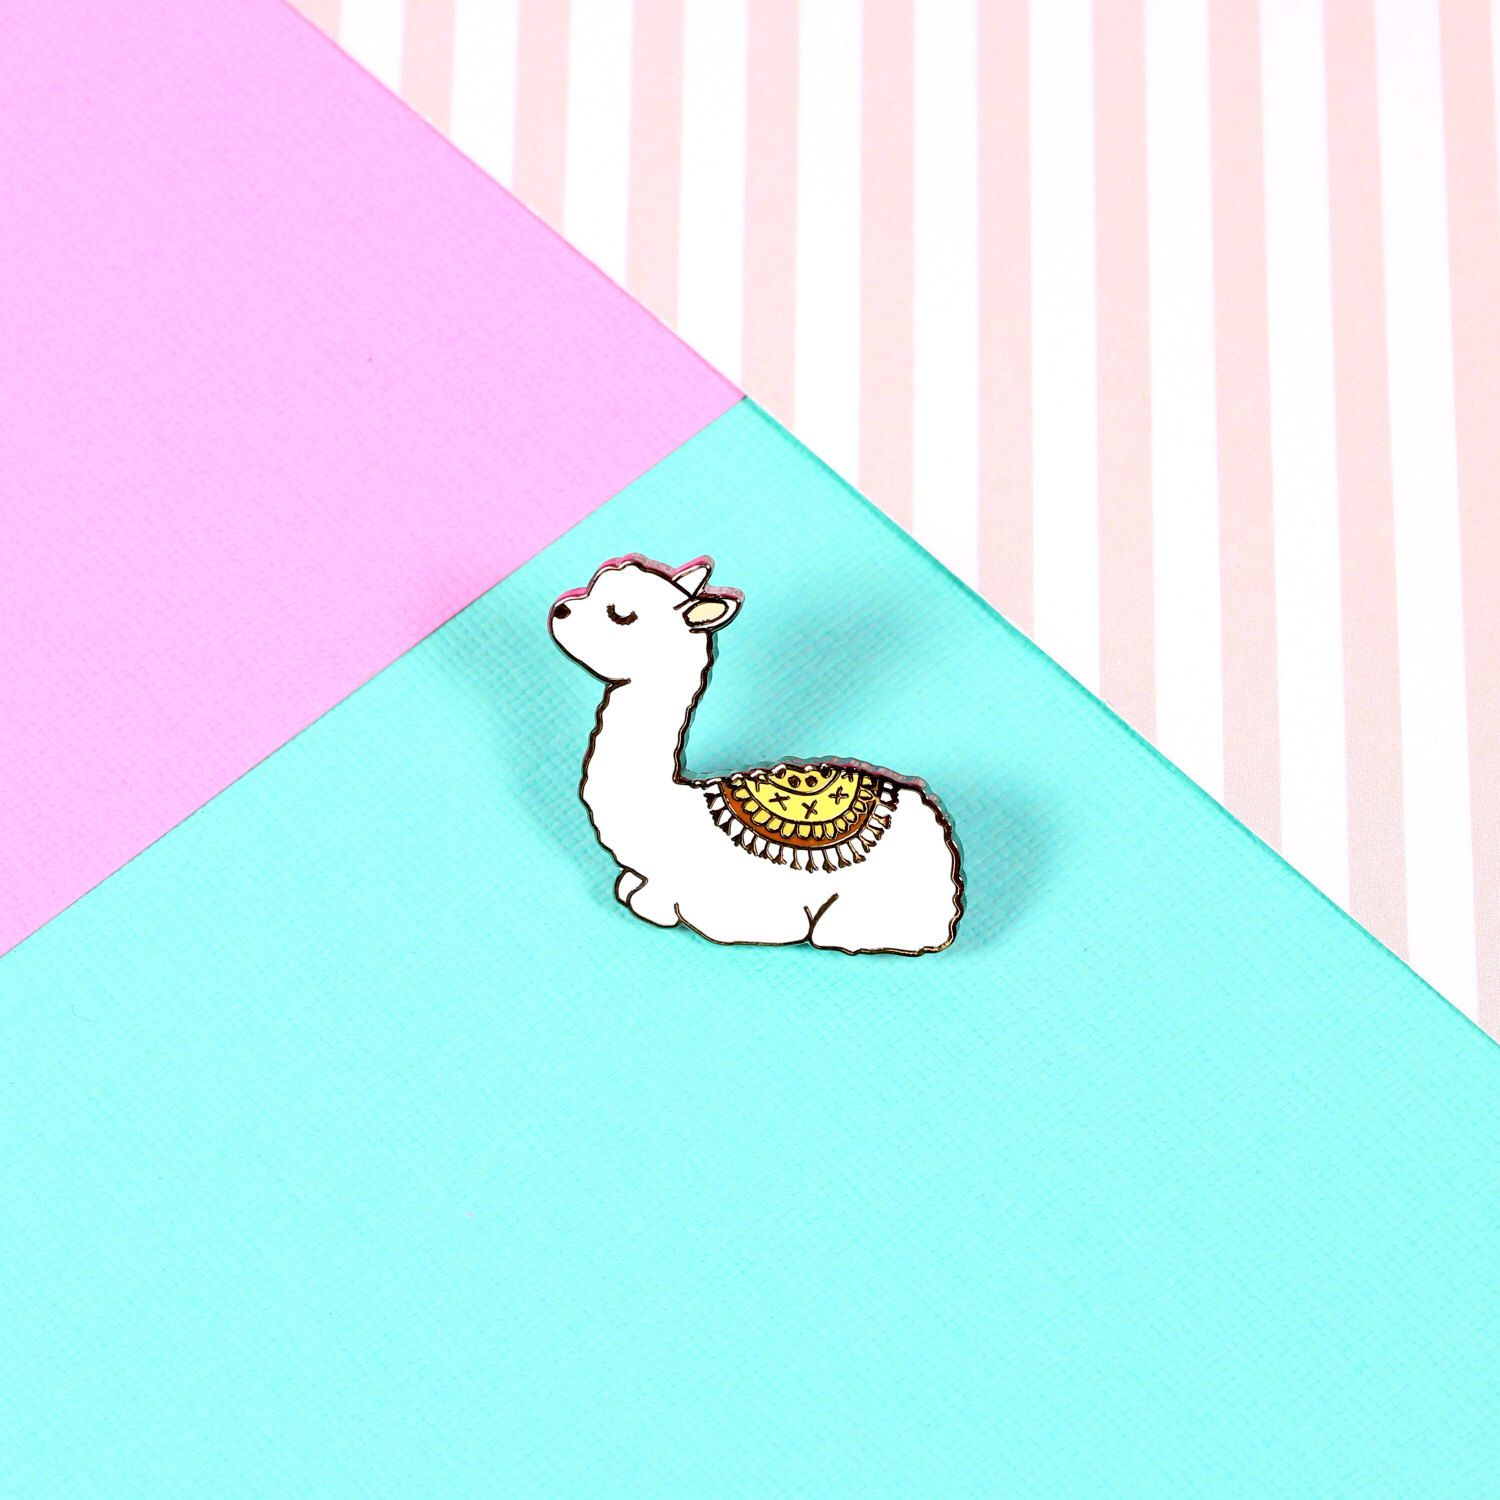 Baby Llama Enamel Pin with clutch back // EP137 by Punkypins on Etsy https://www.etsy.com/listing/481049037/baby-llama-enamel-pin-with-clutch-back